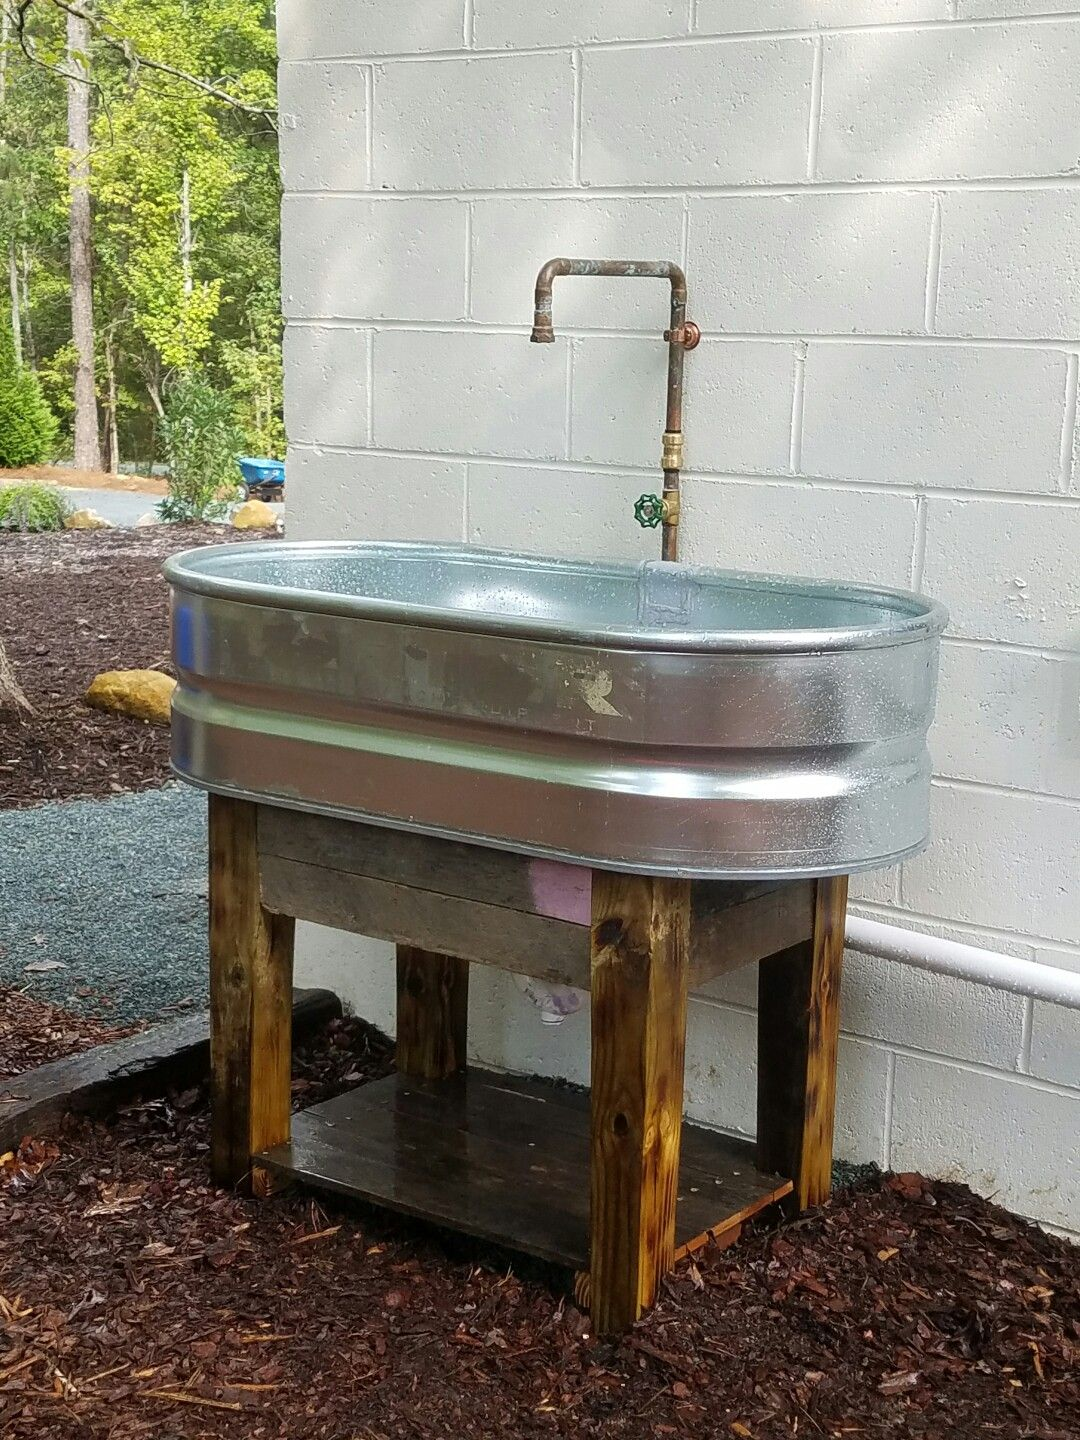 spool sink how garden an designs to kitchen into turn diy wooden cable a make ideas outdoor or